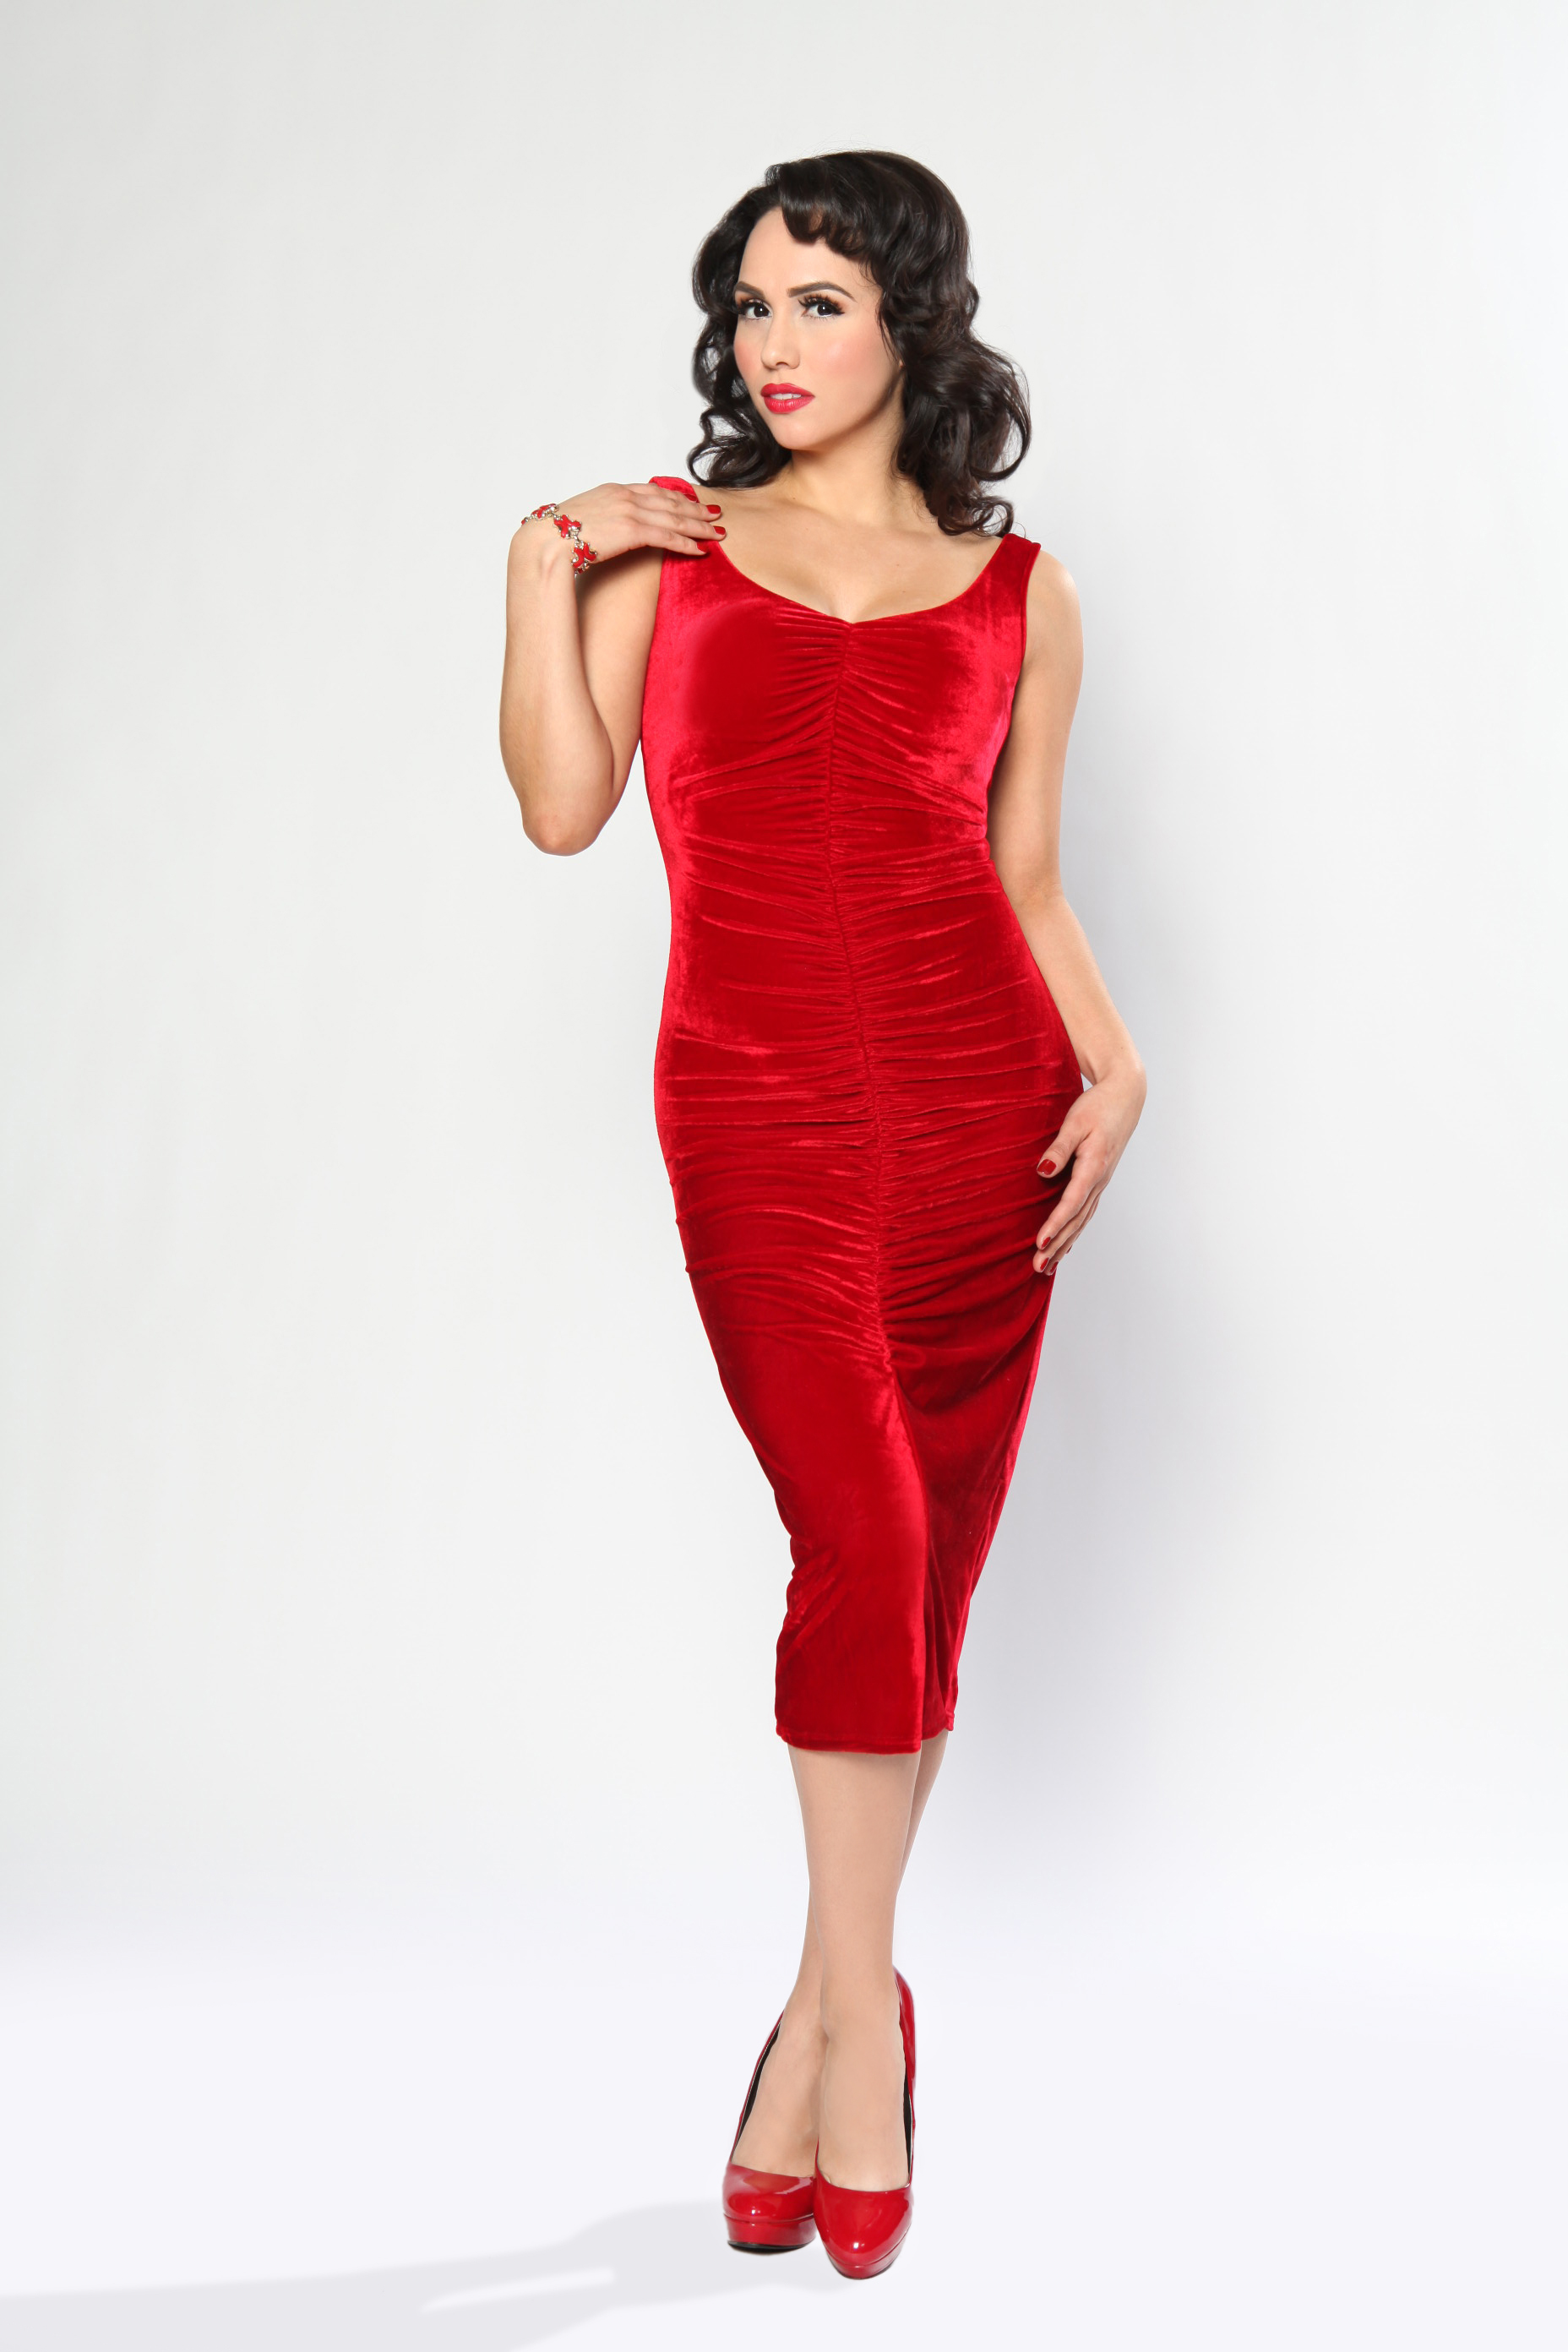 After Hours Dress (Red Velvet) by Bettie Page | Bettie Page